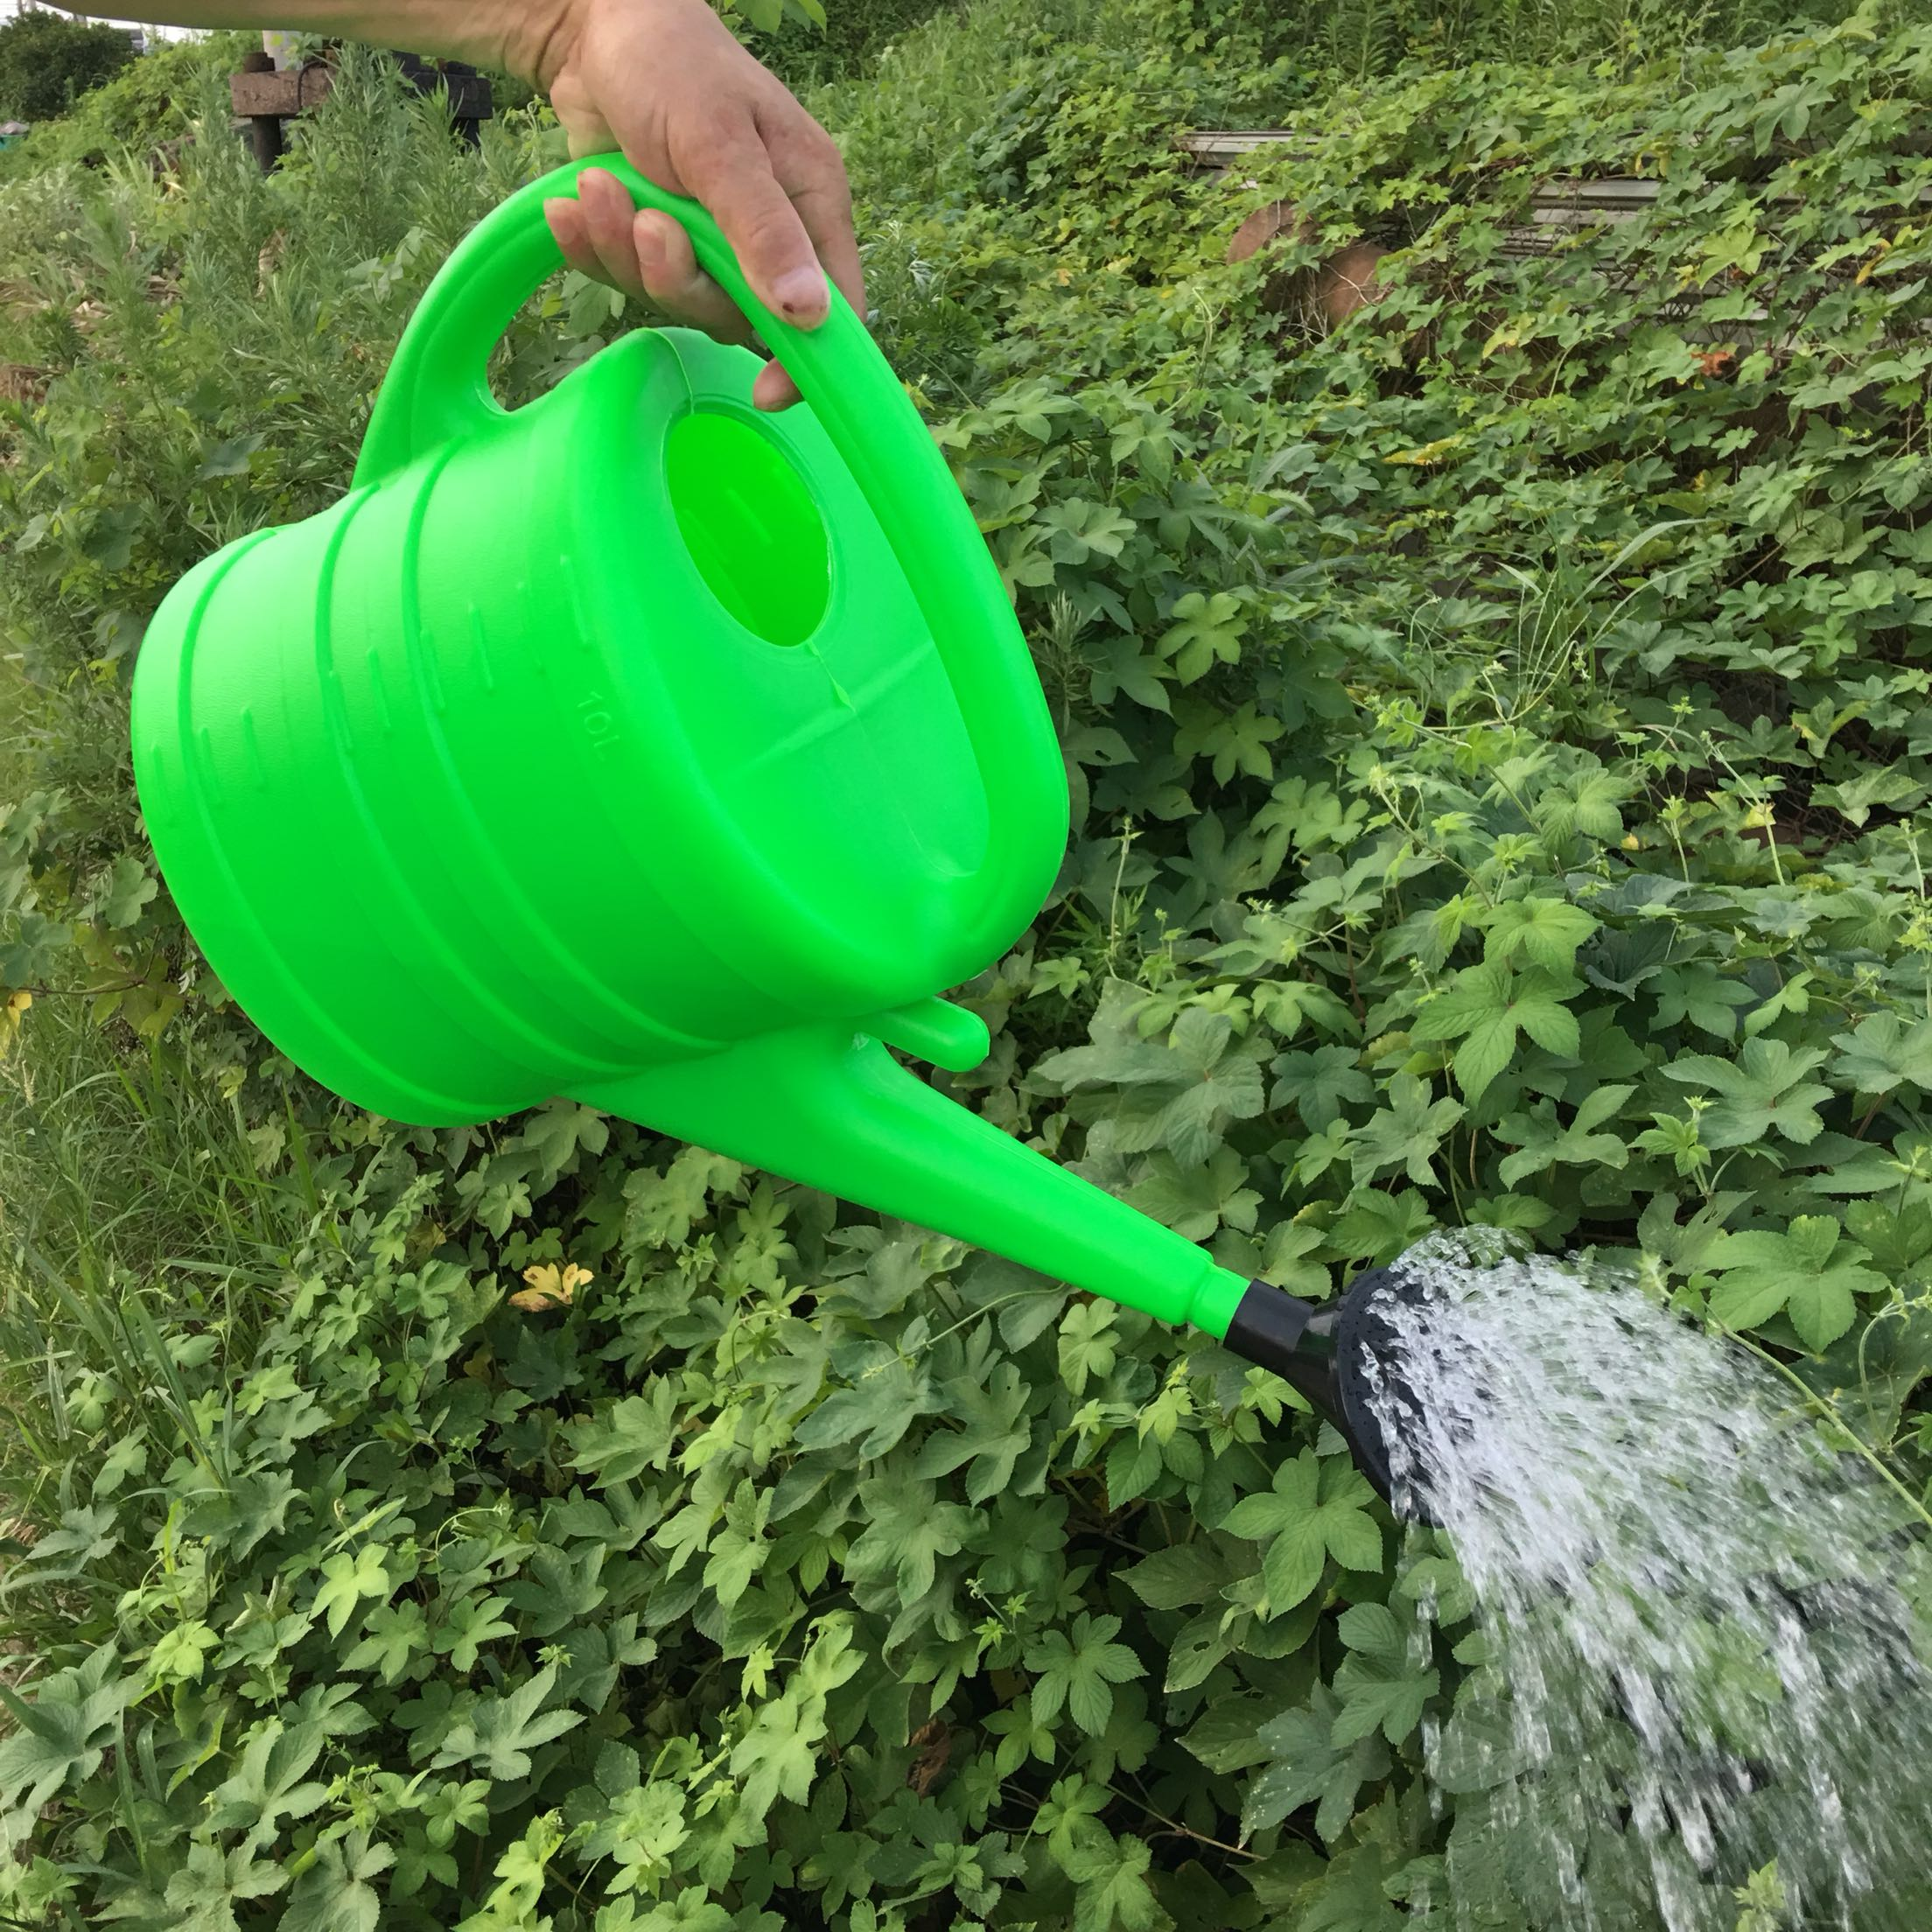 10L Large Capacity Gardening Tools Garden Agricultural Plastics Sprinkling Kettle Green Water Cans